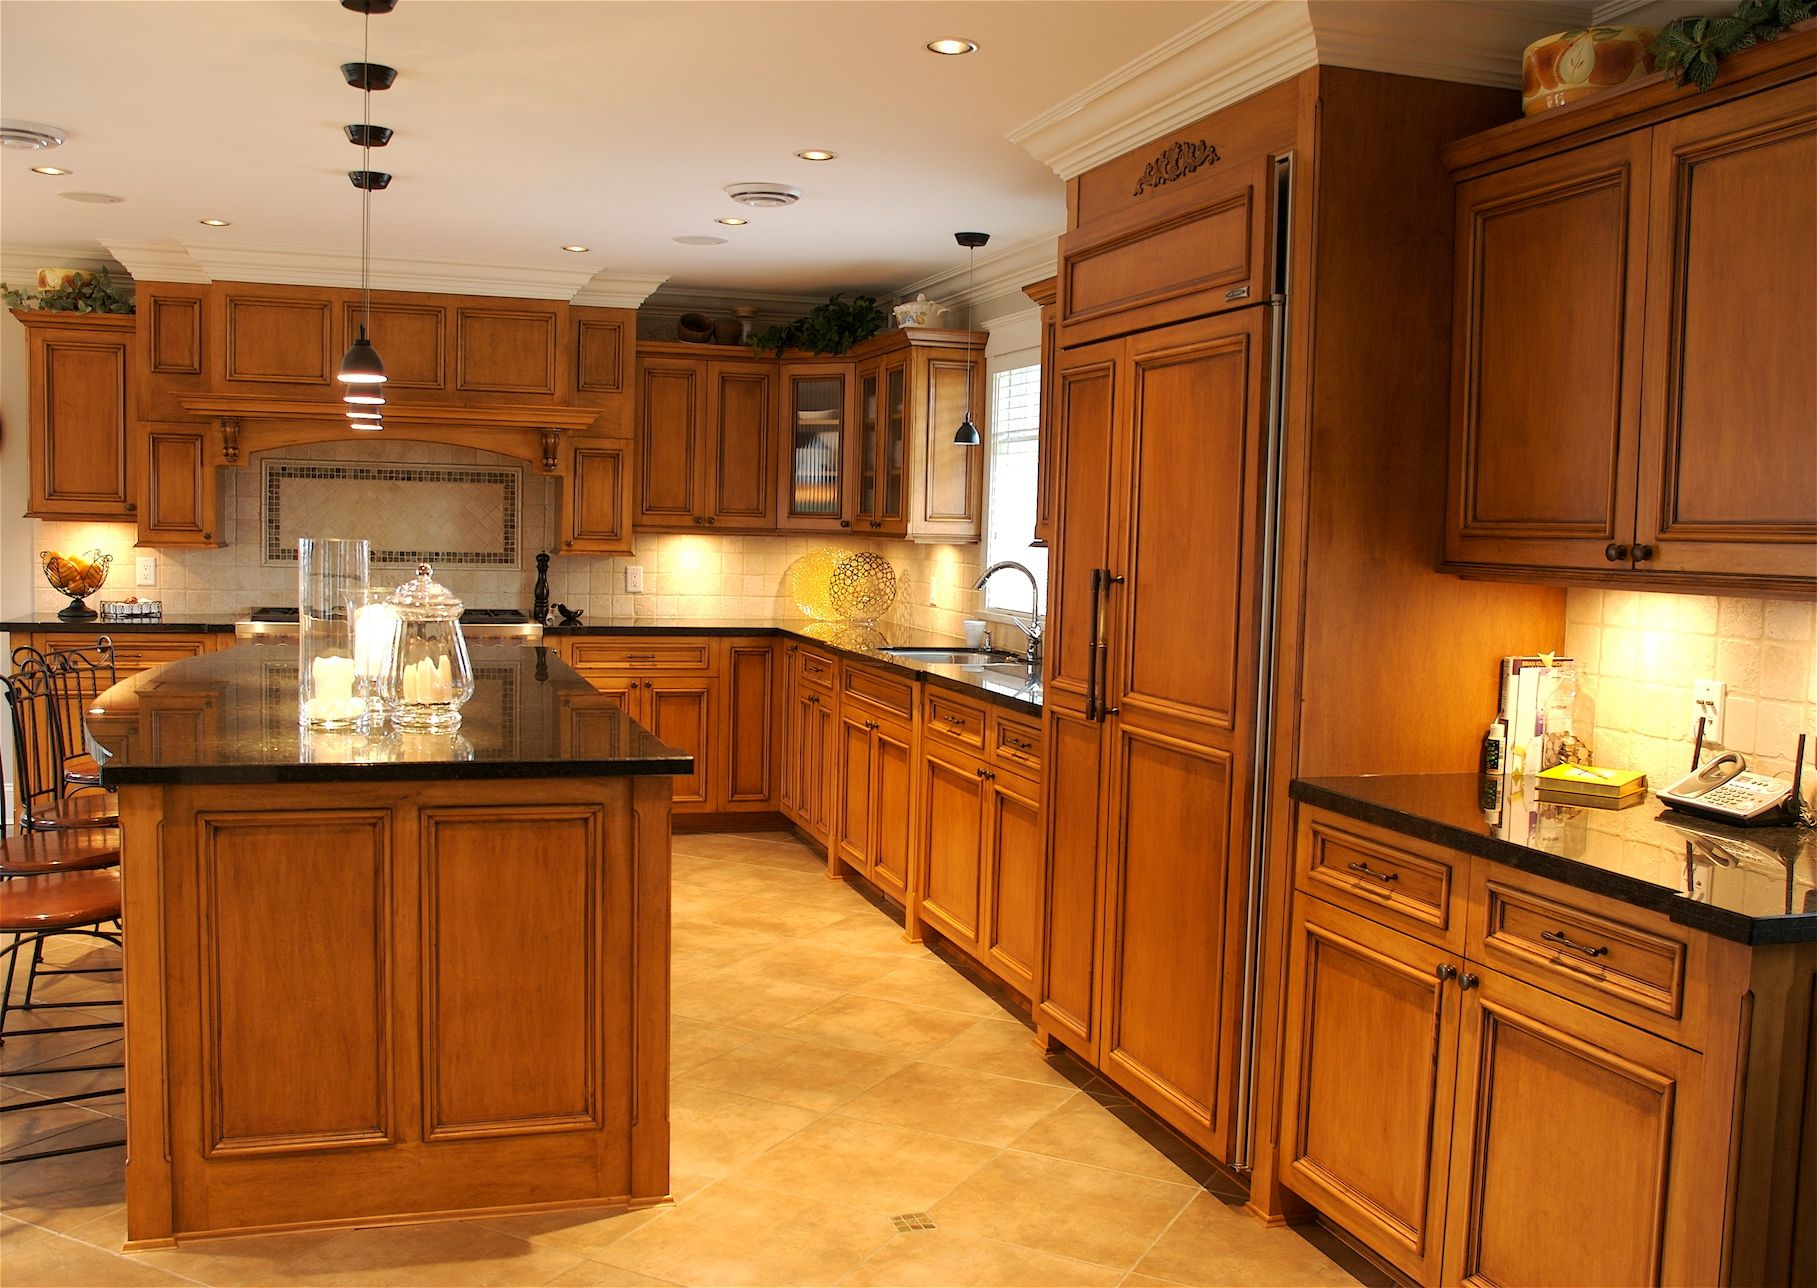 Maple cabinets with black countertop and light tile ... on Maple Cabinets With Black Countertops  id=38320